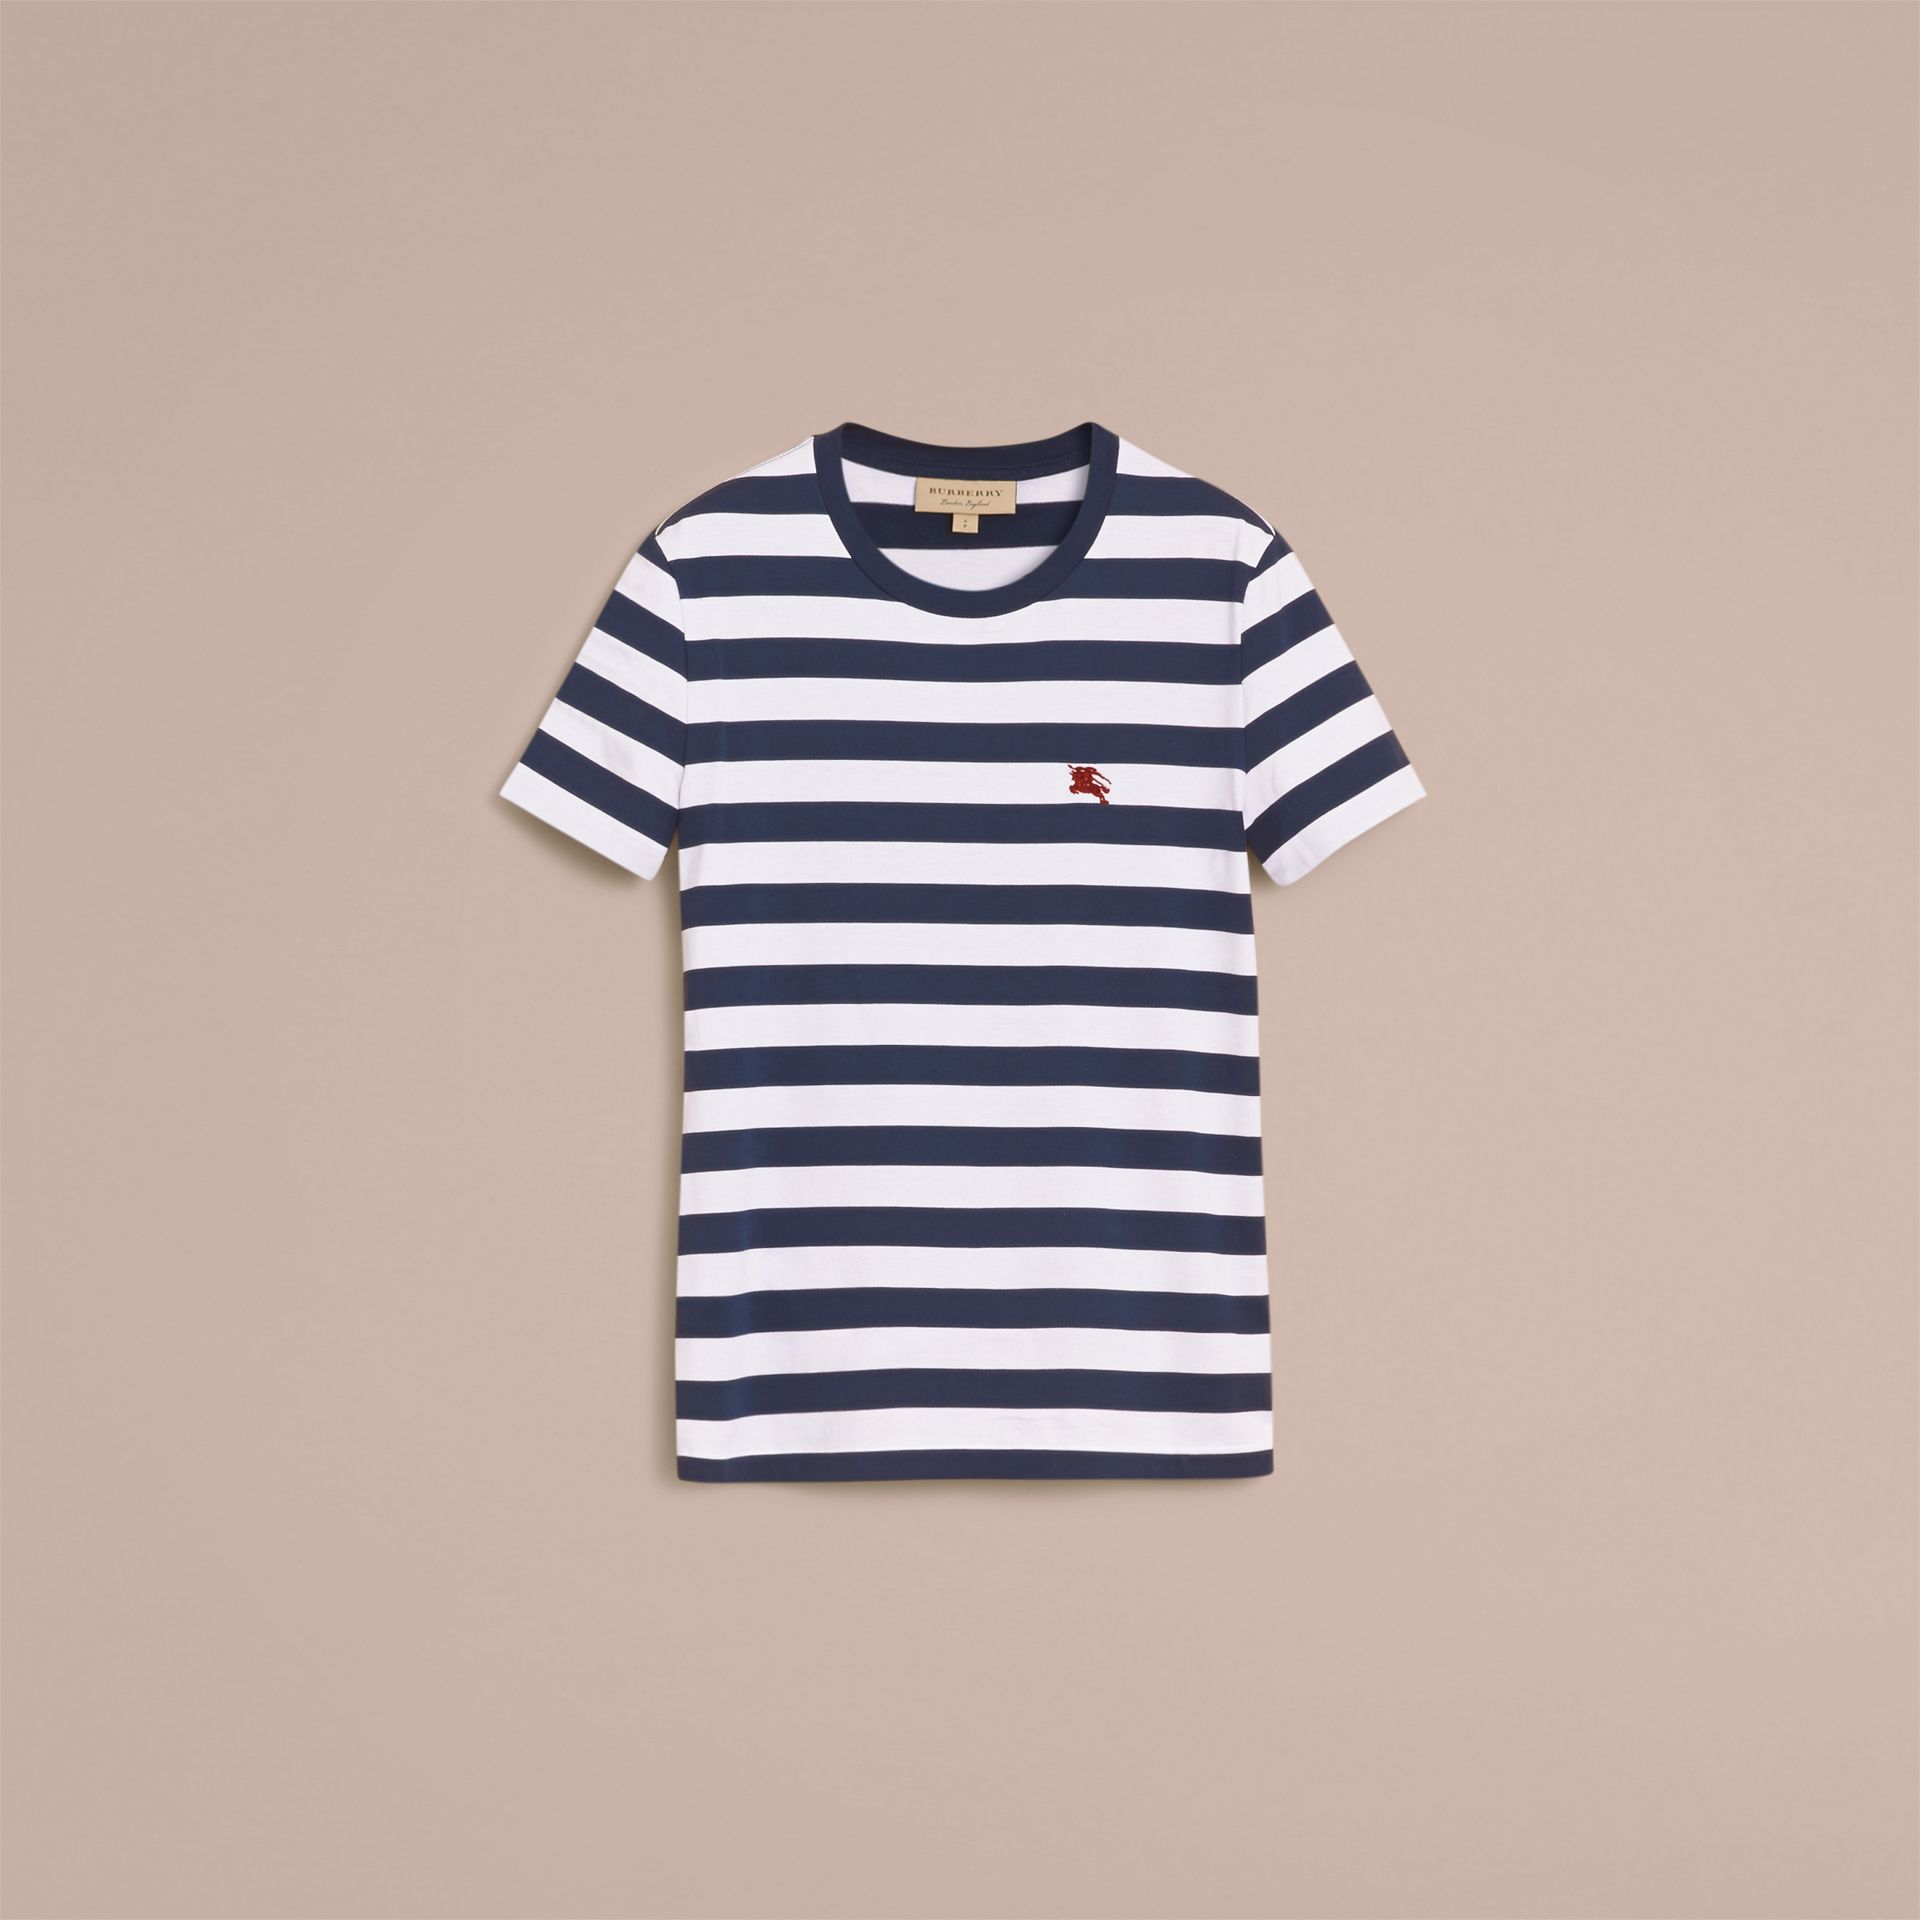 Striped Cotton T-Shirt in White/navy - Men | Burberry - gallery image 4